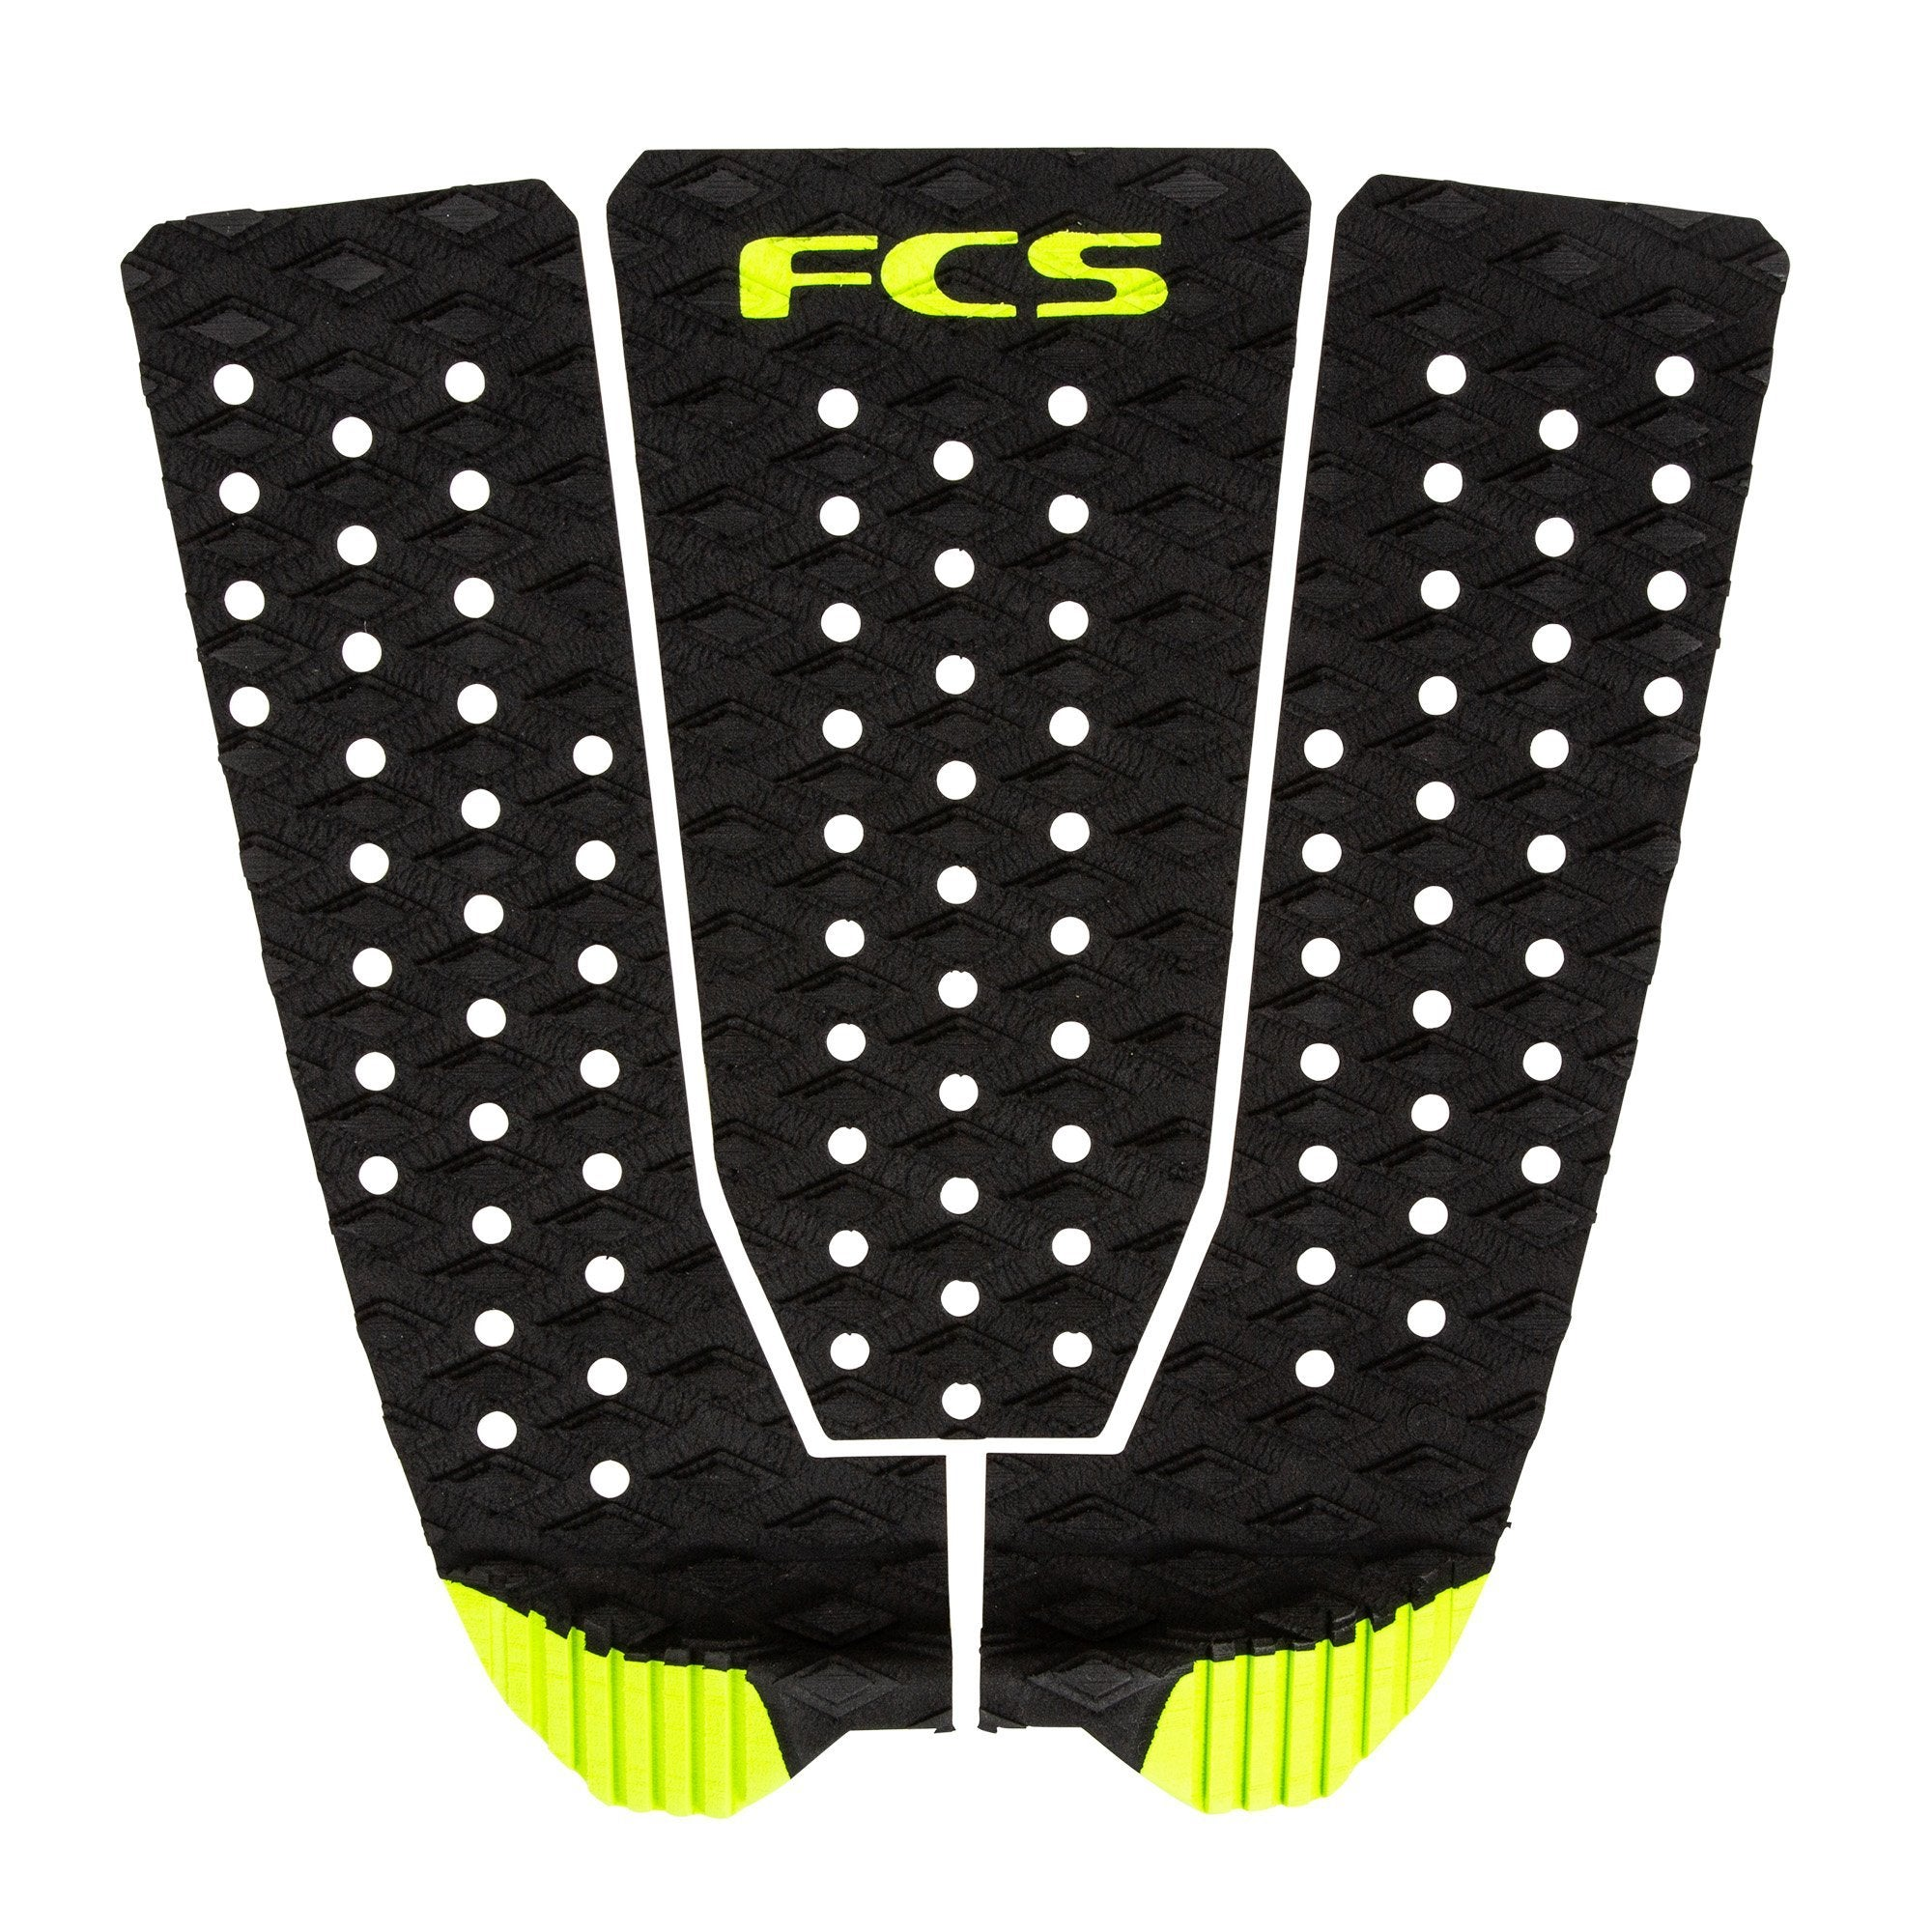 FCS Kolohe Andino Traction - Board Store FCSTraction